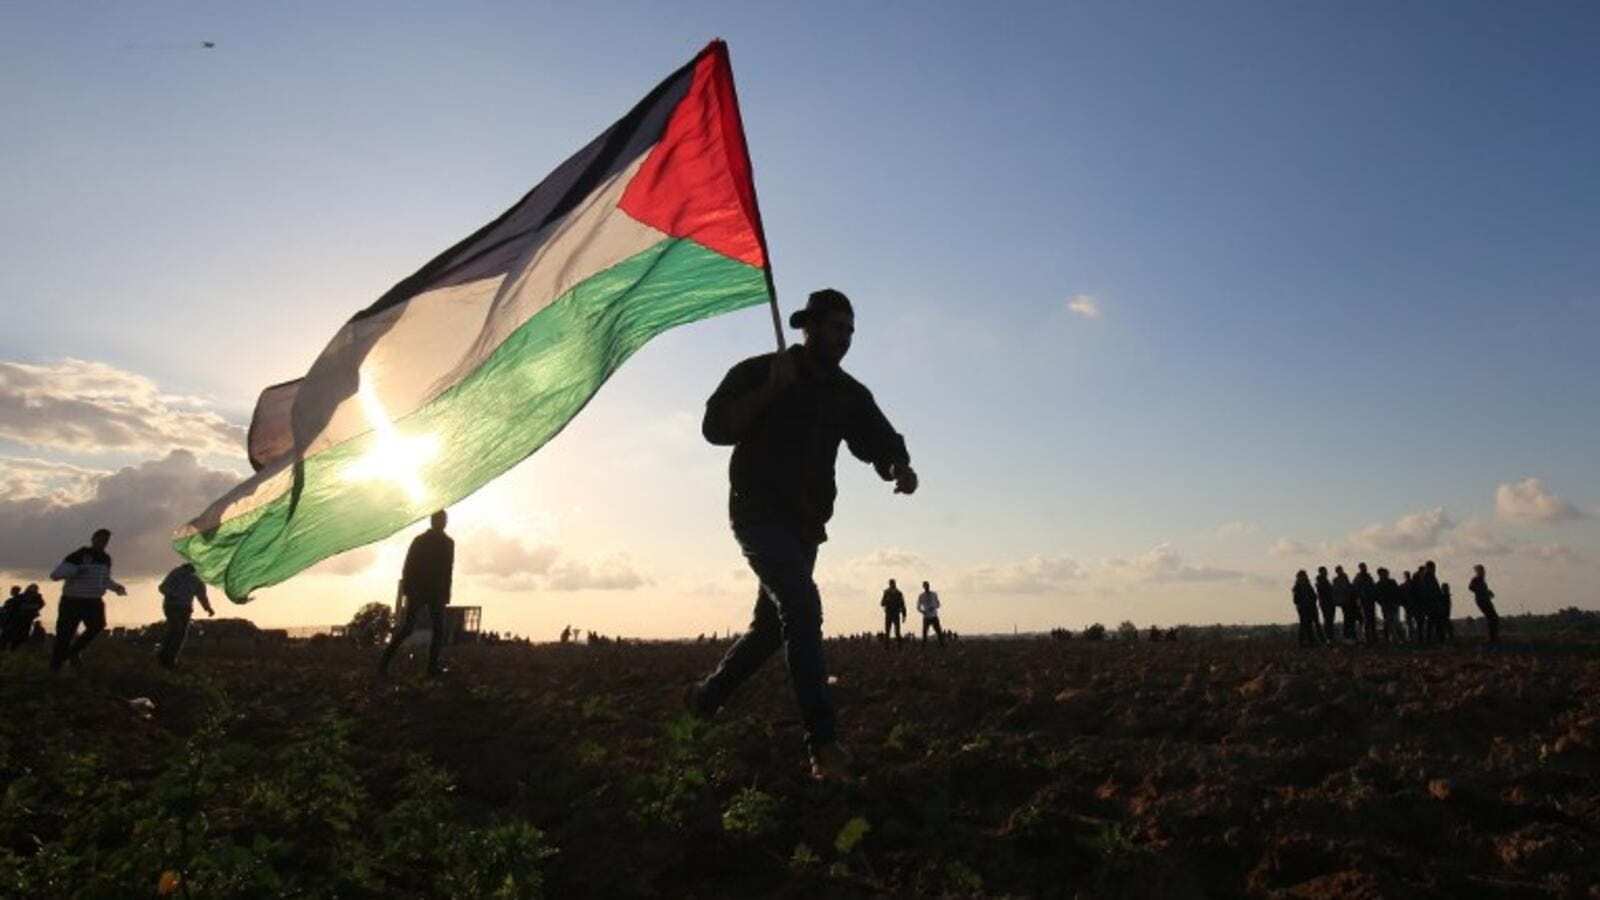 A Palestinian protester carries a national flag during a demonstration near the border between Israel and Khan Yunis in the southern Gaza Strip. (AFP/File)